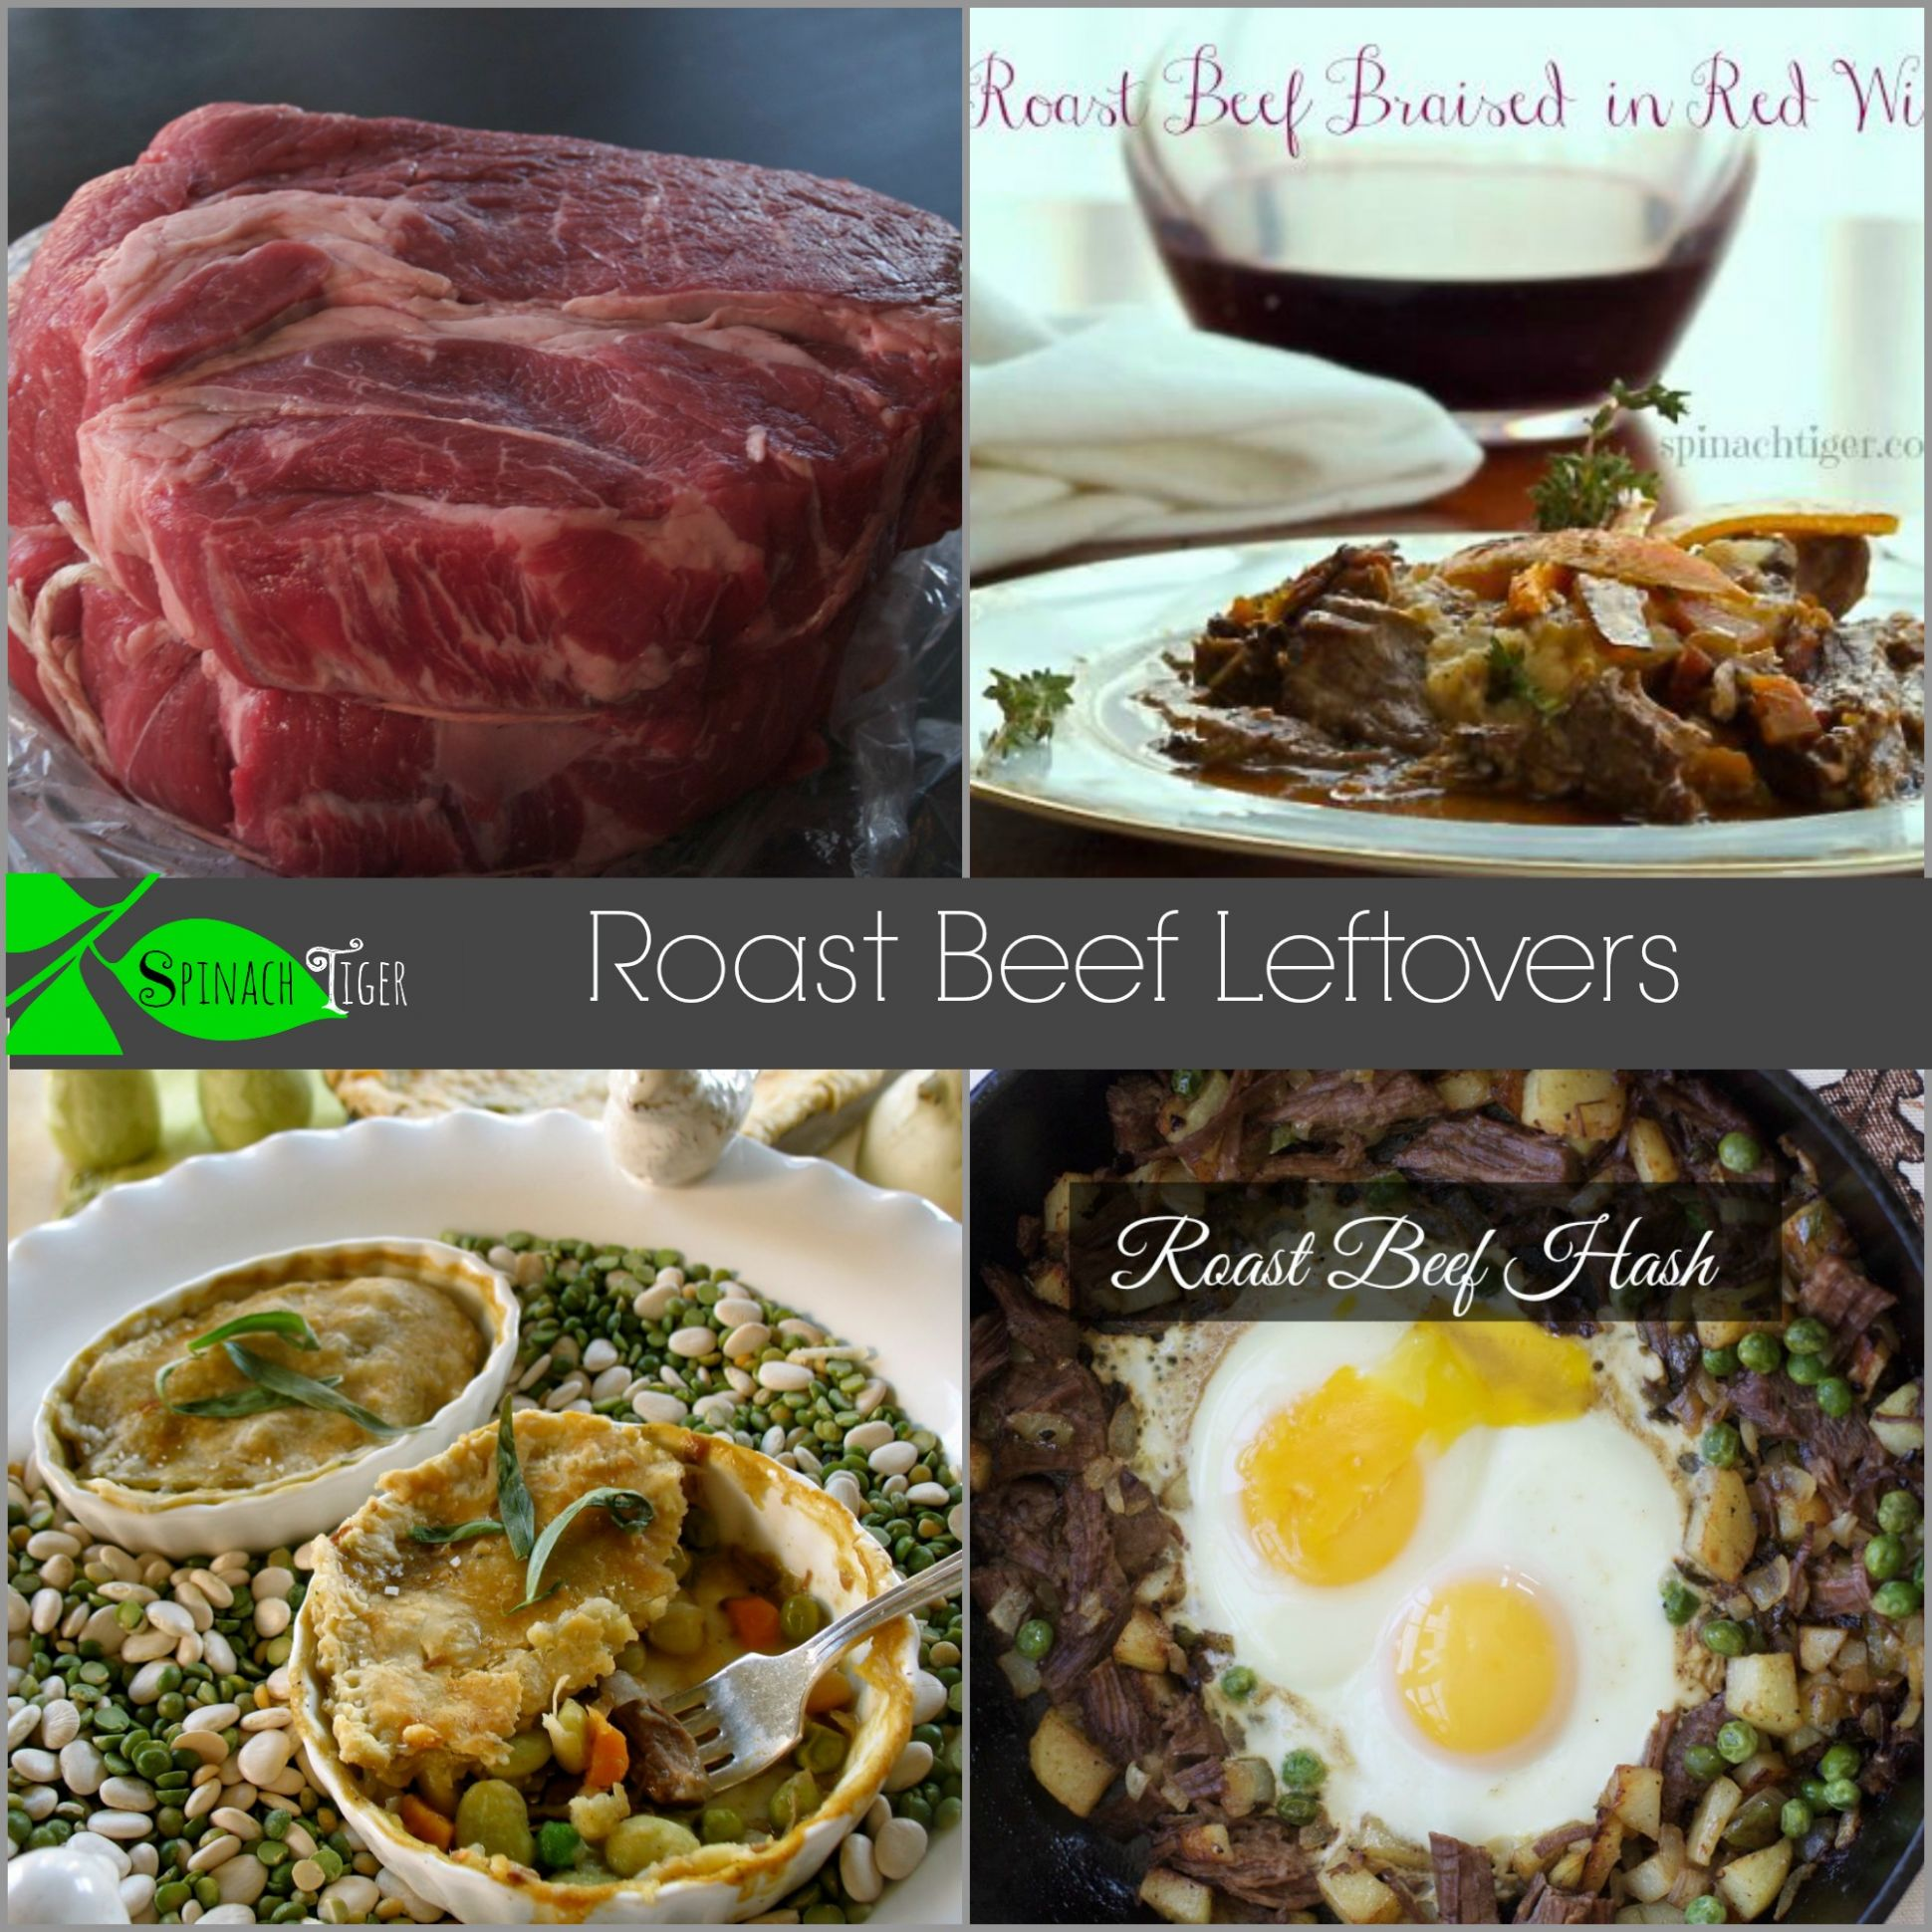 My Favorite Leftover Roast Beef Recipes and Roast Beef Hash ...